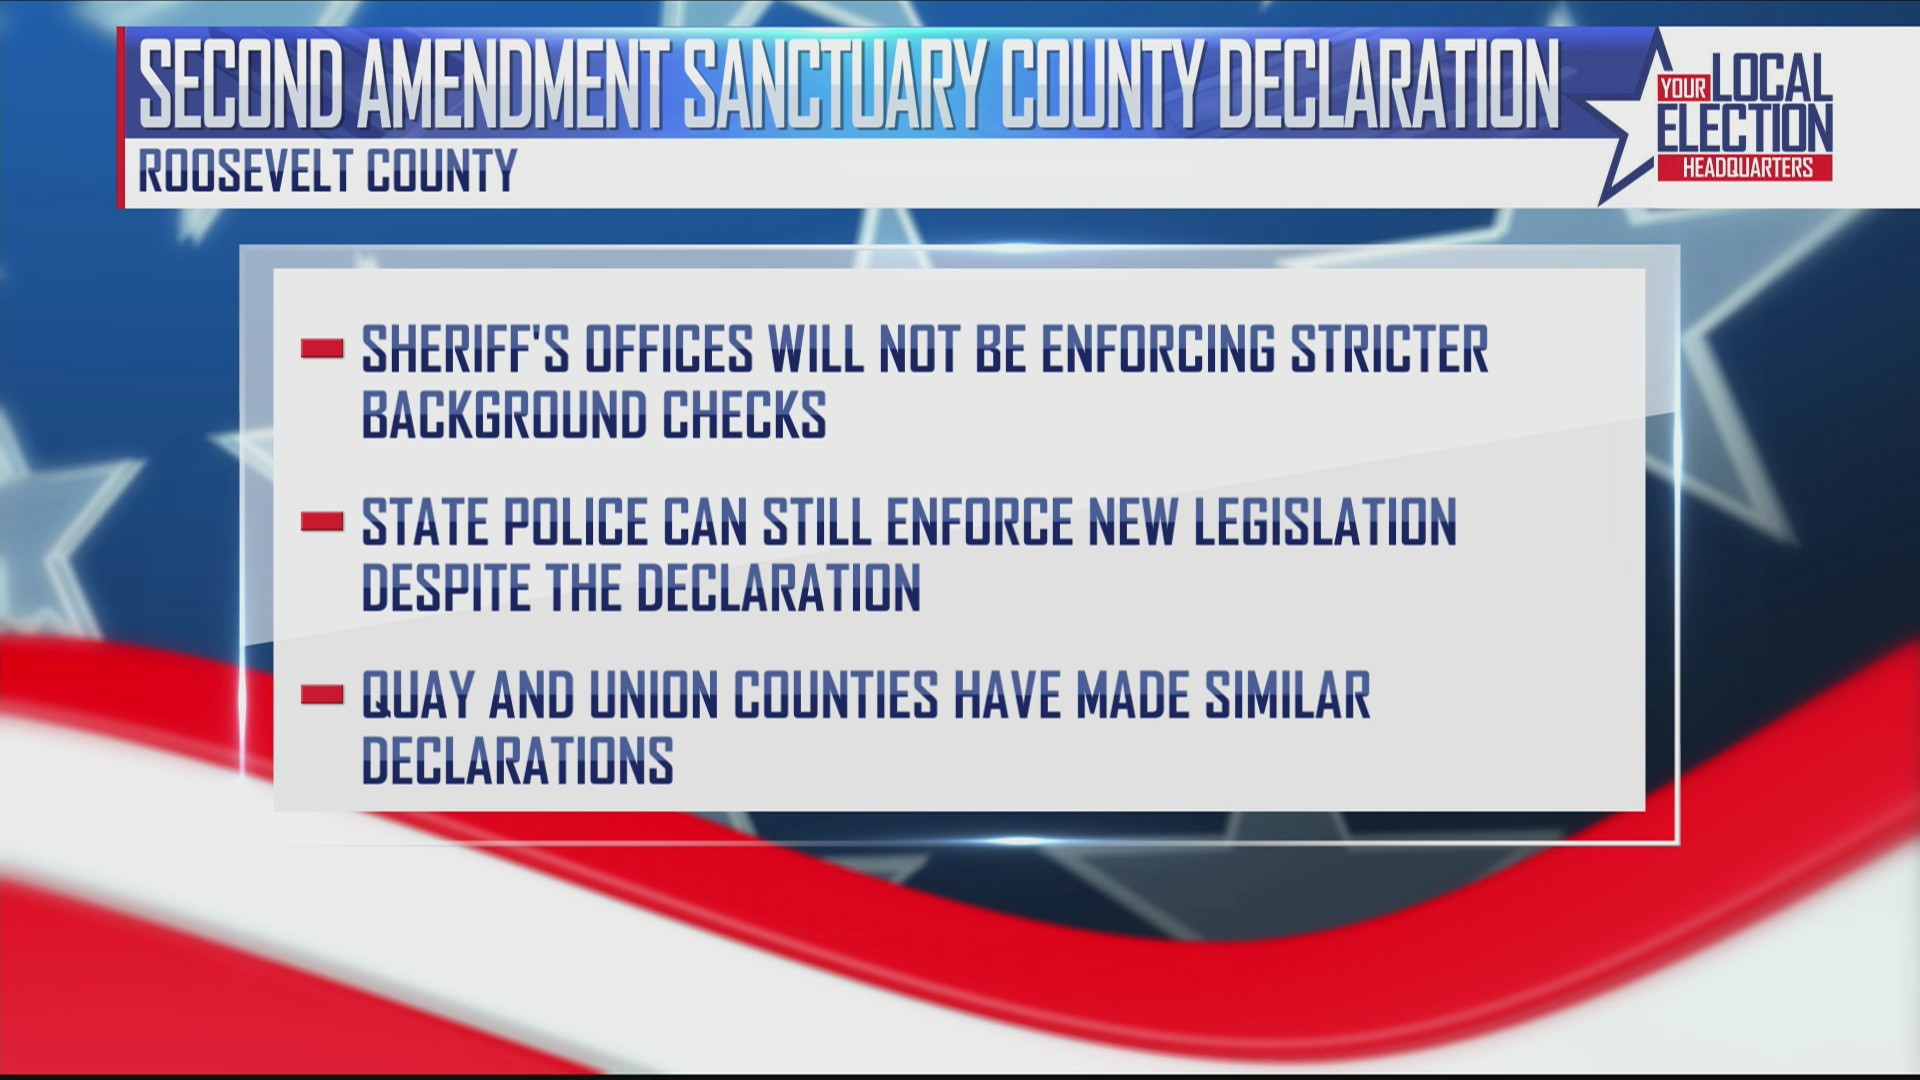 Roosevelt County In New Mexico Declares itself a Second Amendment Sanctuary County